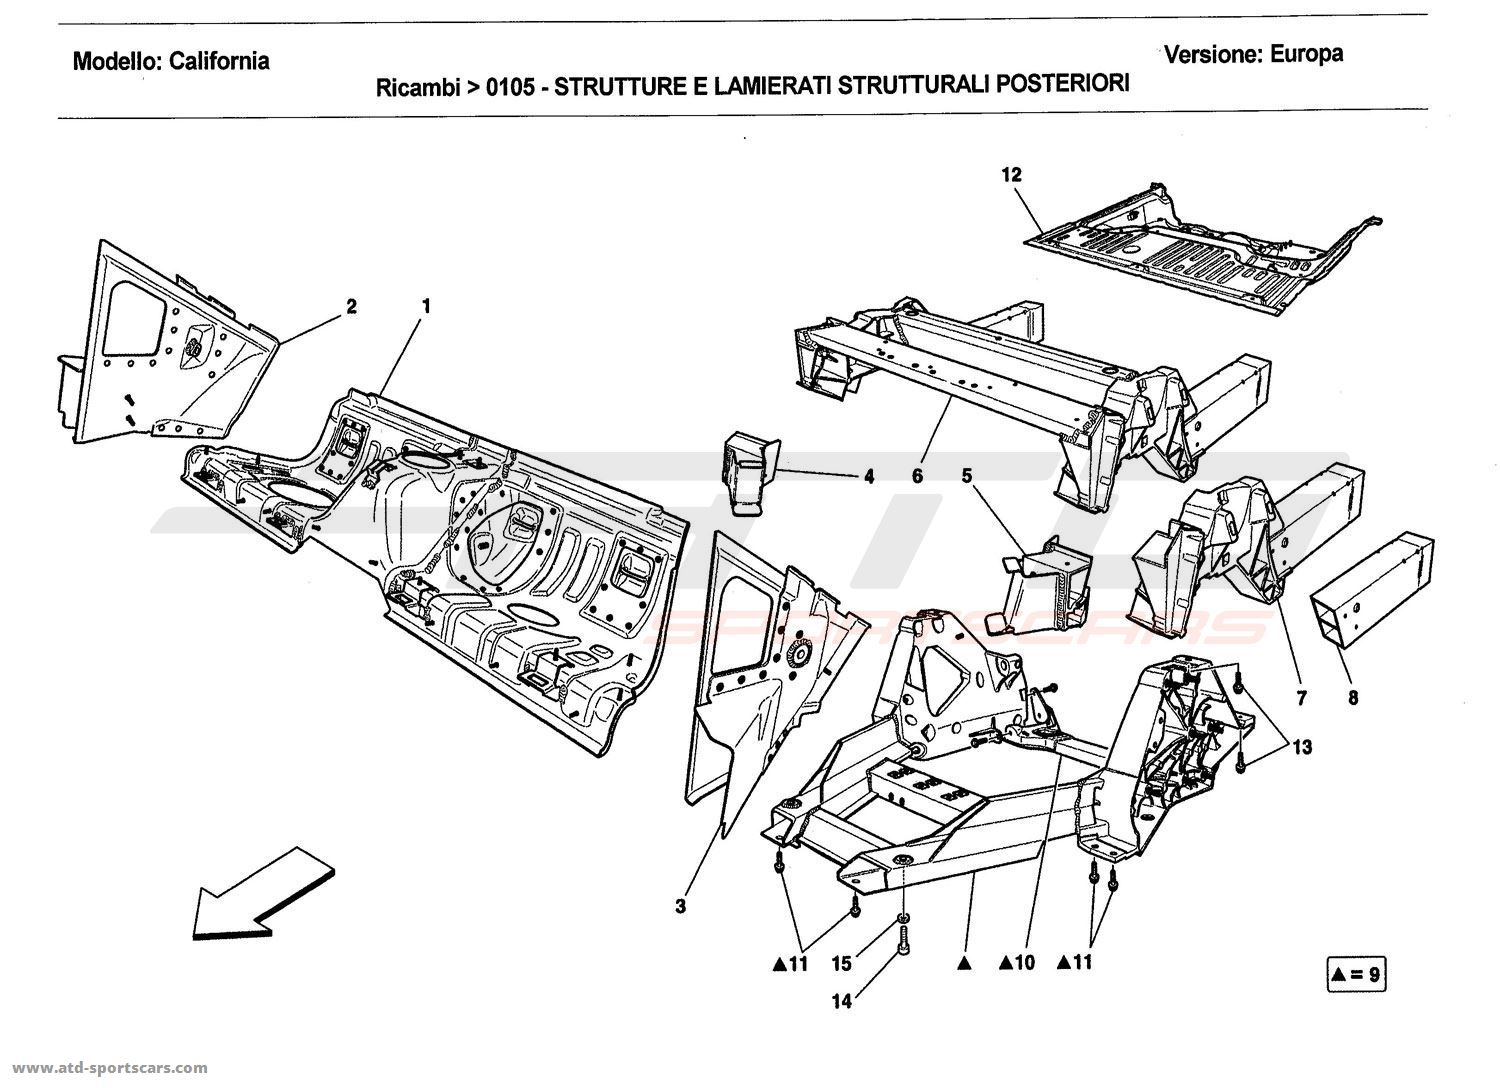 REAR STRUCTURES AND CHASSIS BOX SECTIONS